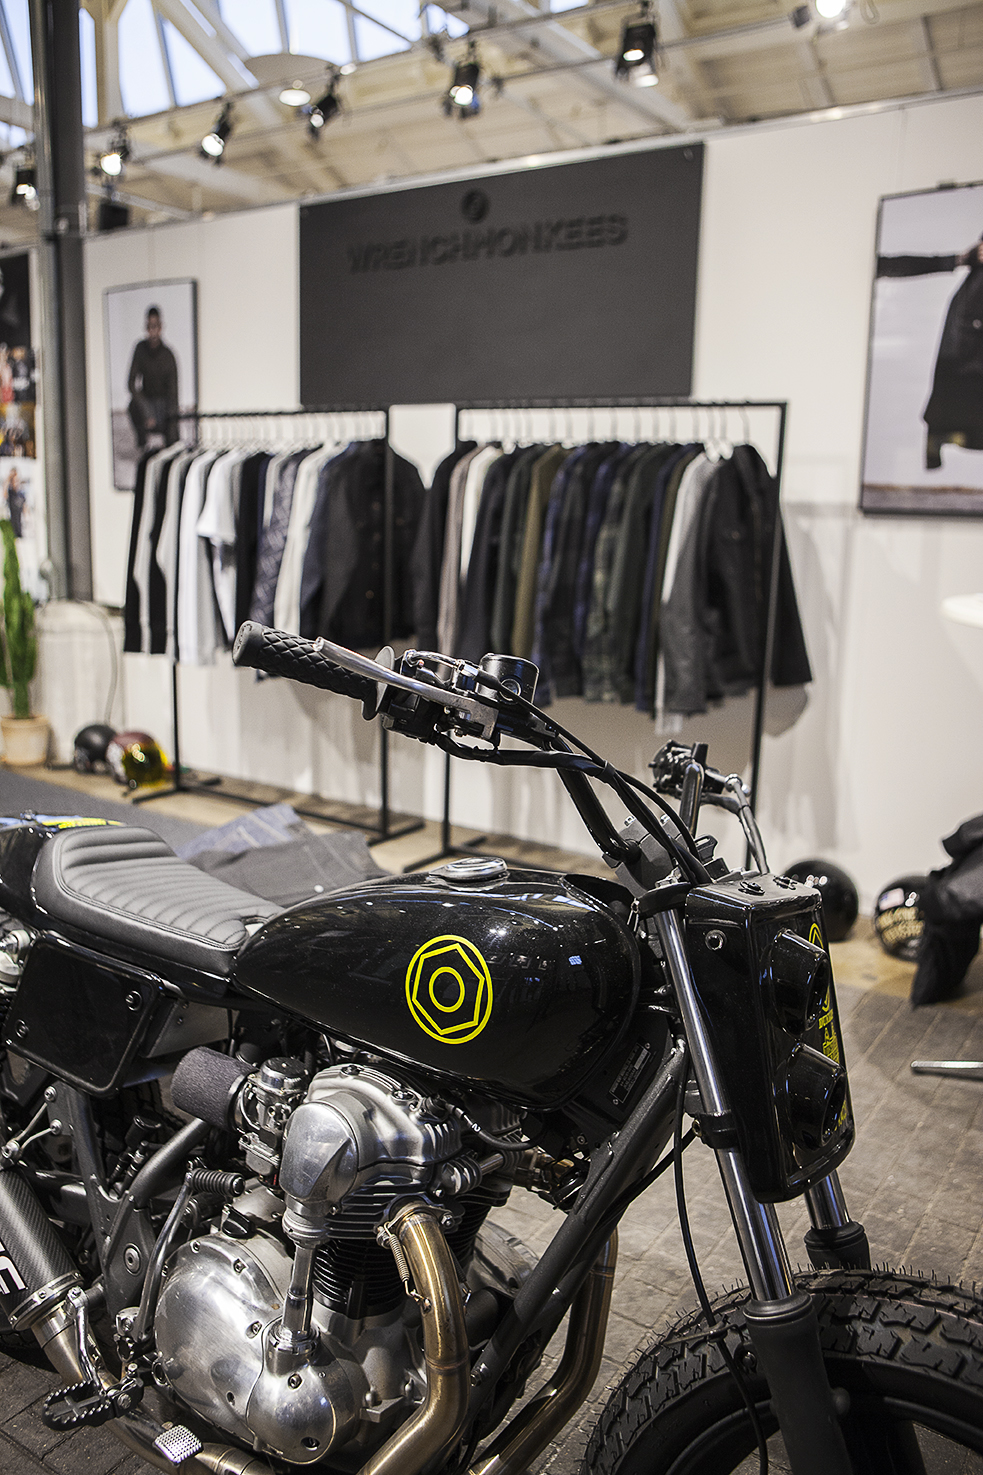 The Wrenchmonkees stand at Revolver Copenhagen Int. Fashion Trade Show during February 2017. The motorcycle is named MonoMonkee and is made specially for our AW17 collection.